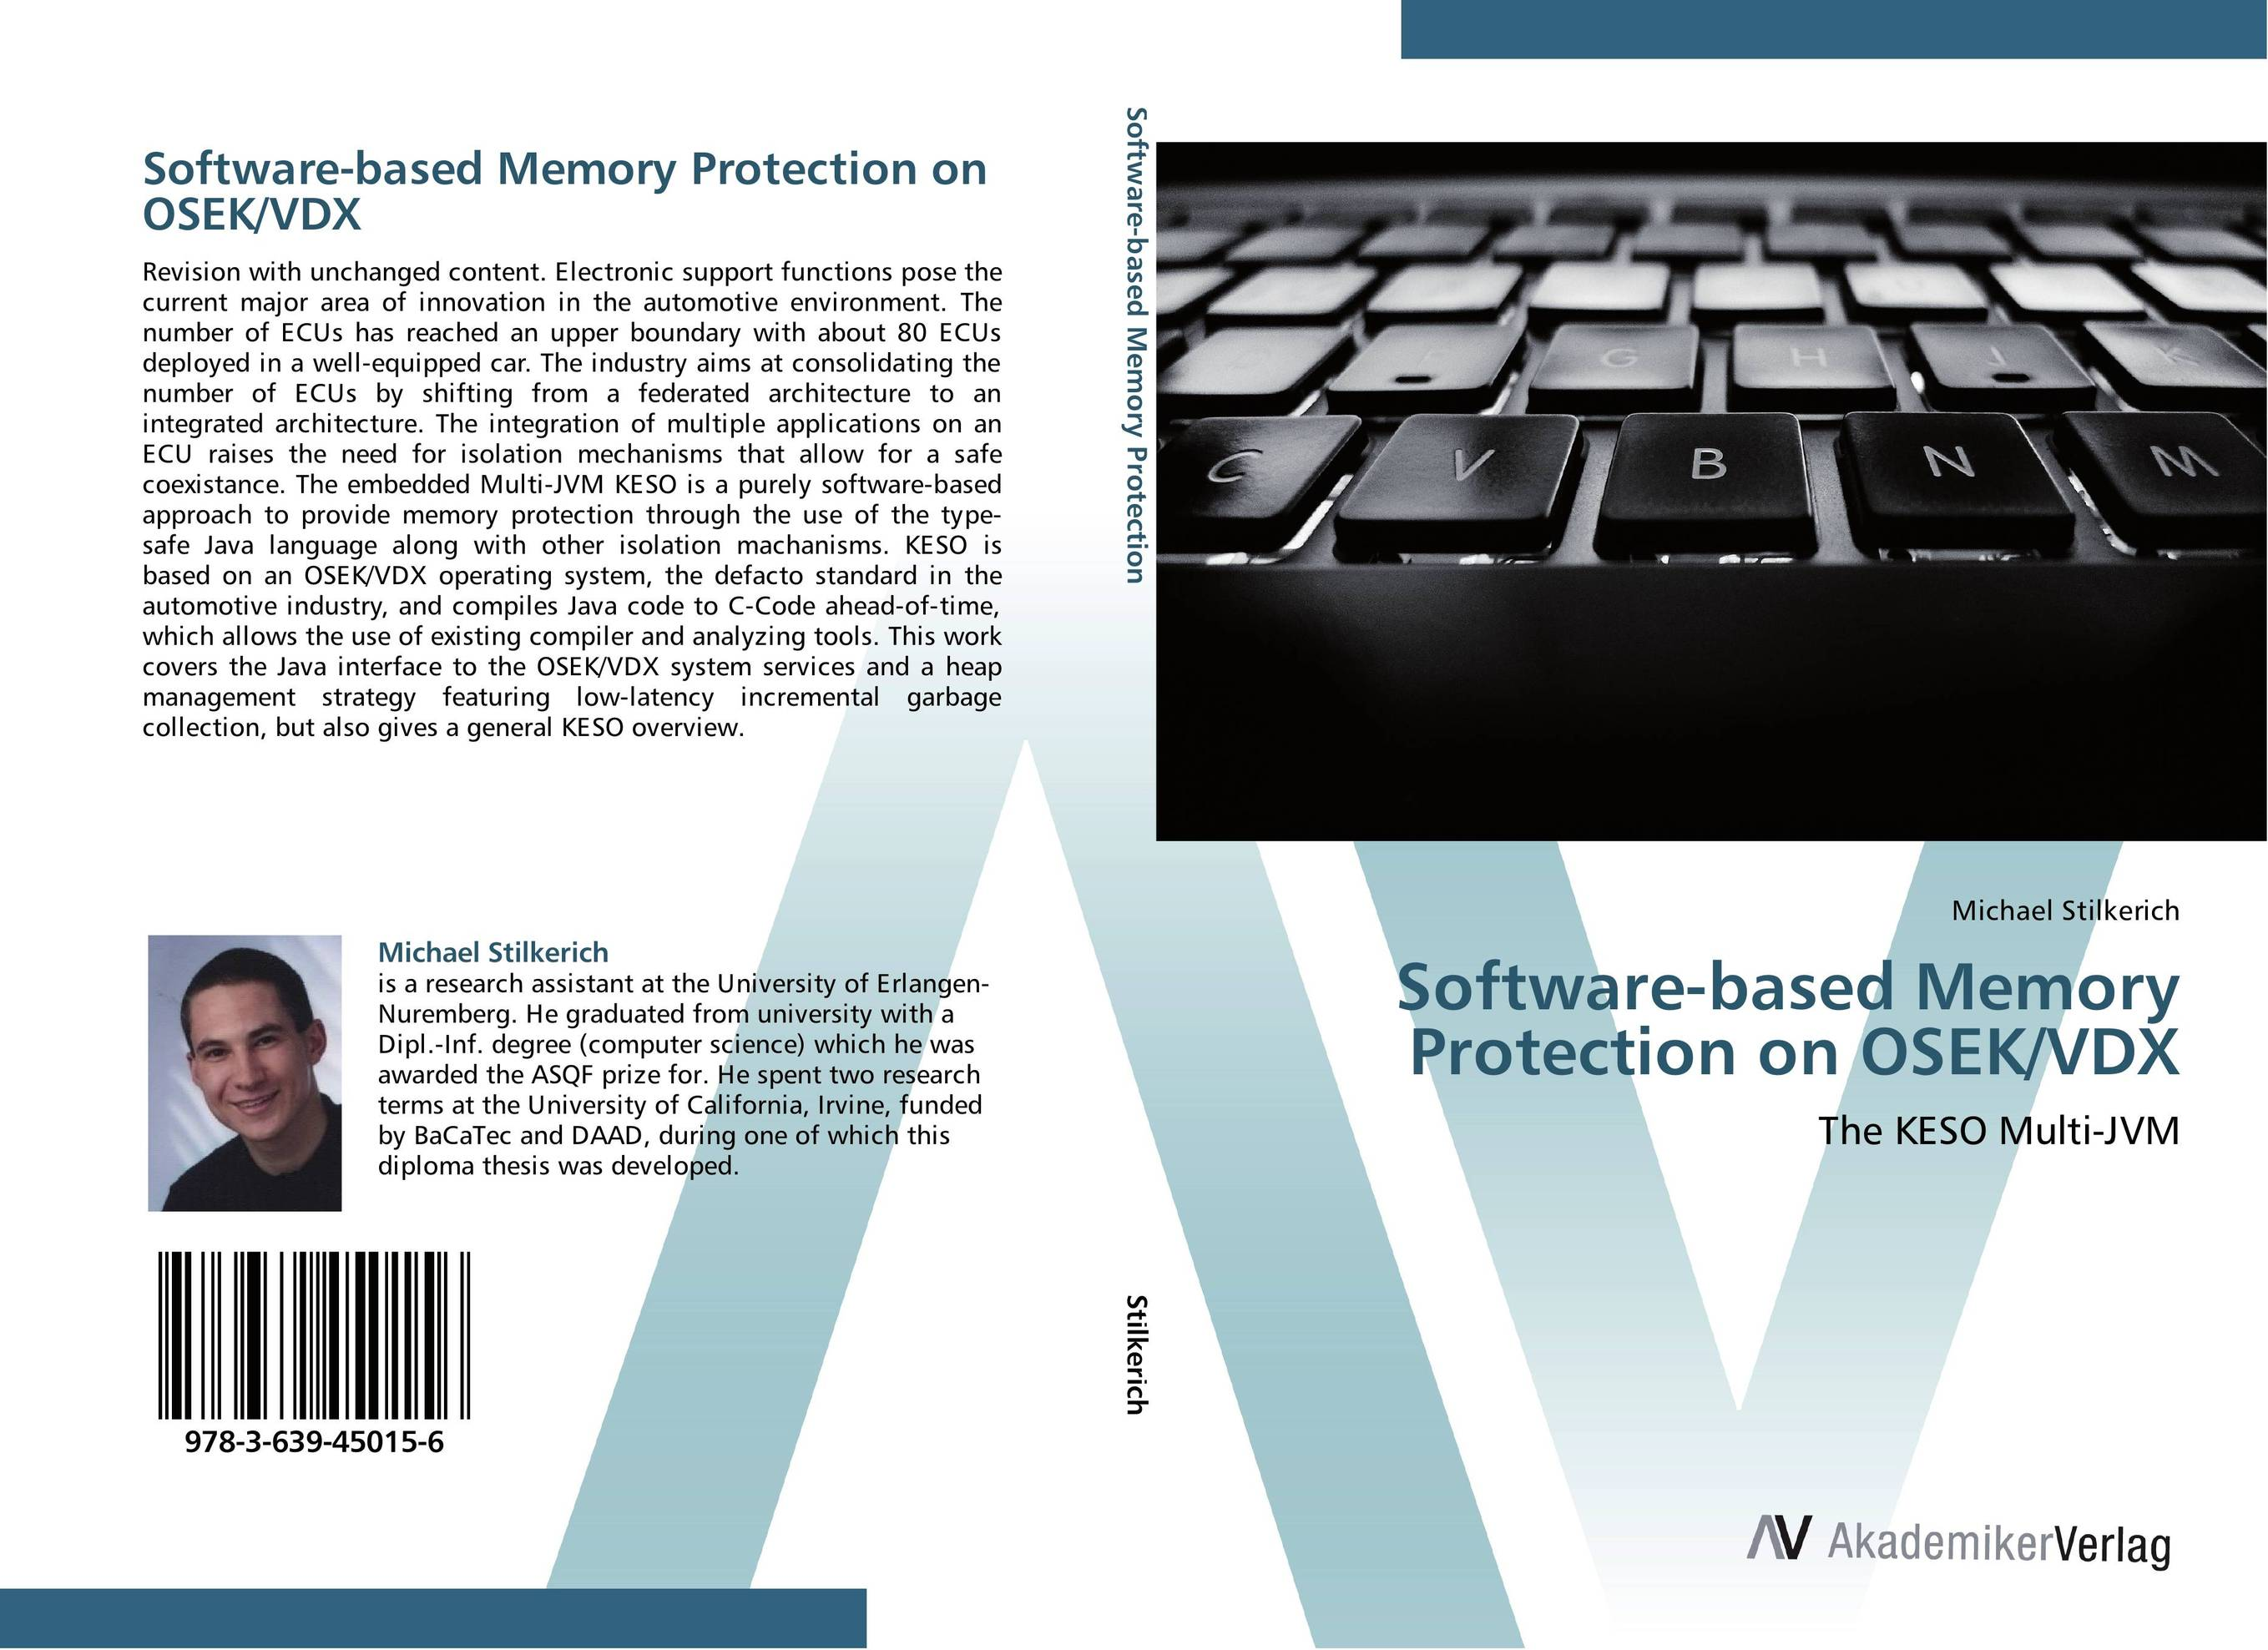 Software-based Memory Protection on OSEK/VDX an incremental graft parsing based program development environment